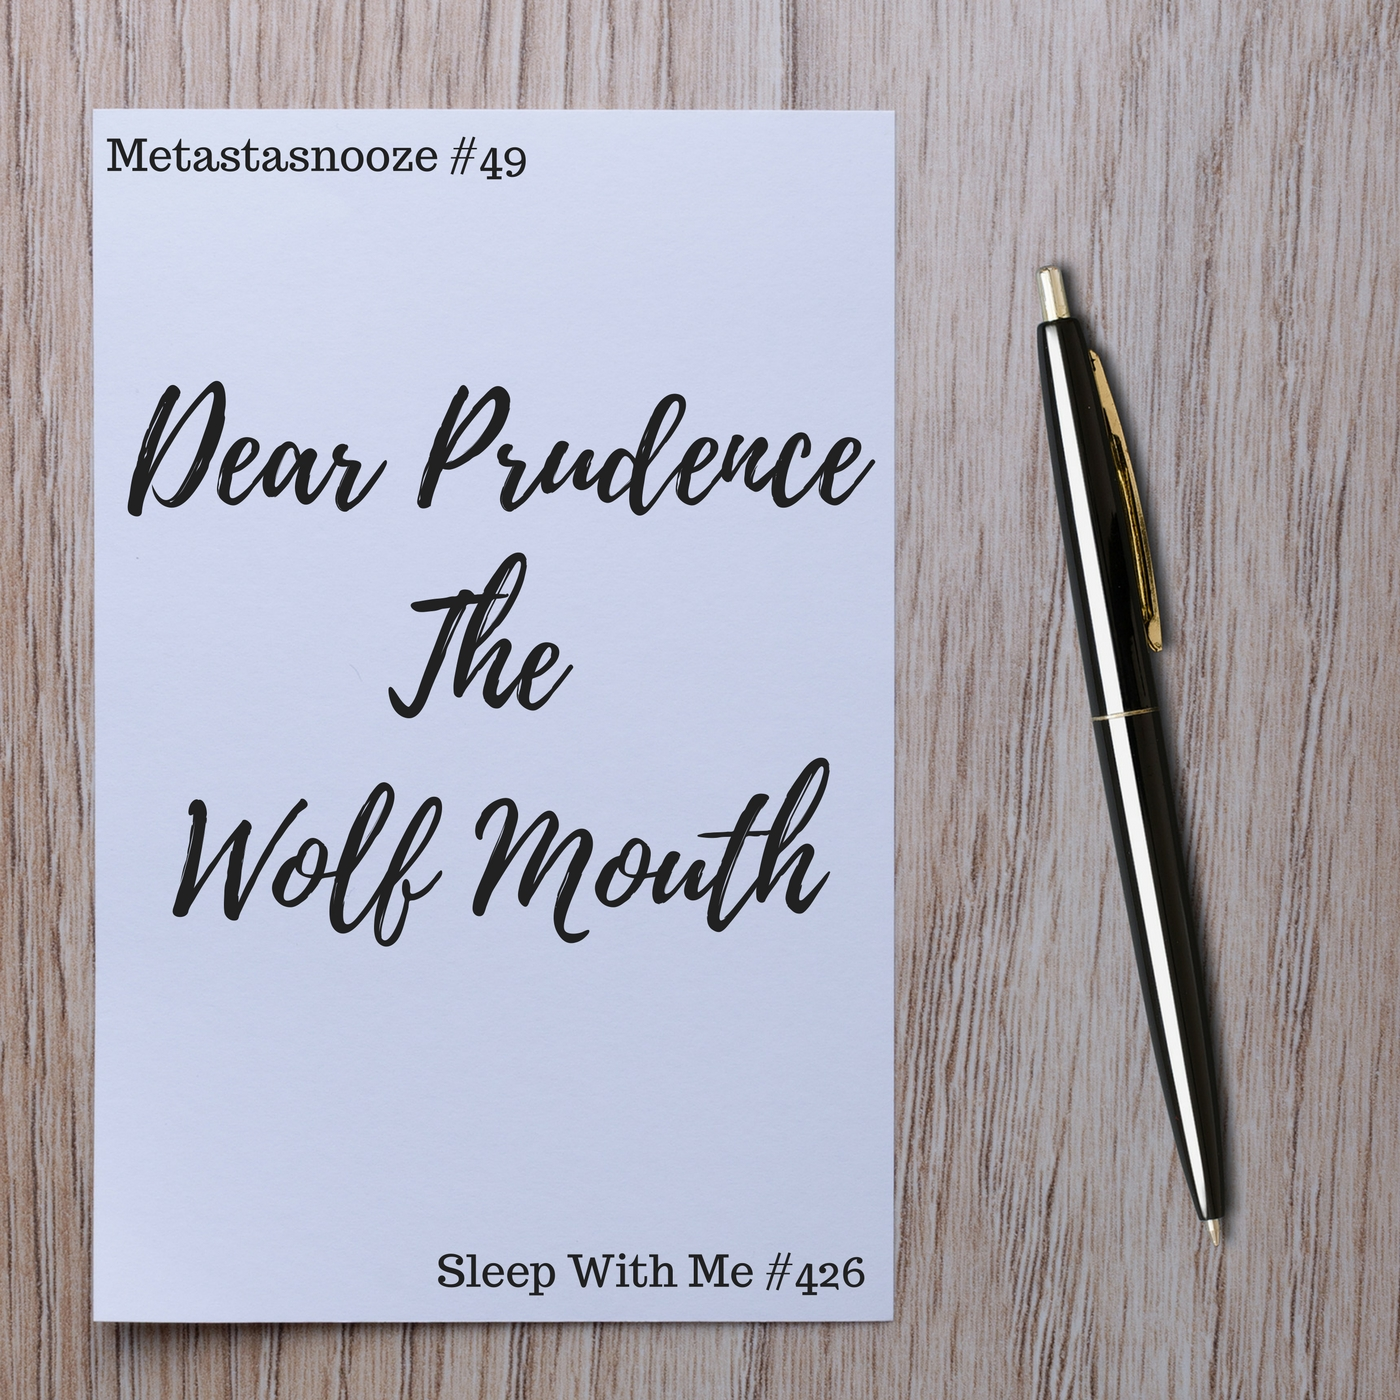 Dear Prudence, The Wolf Mouth | Metastasnooze #49 | Sleep With Me #426